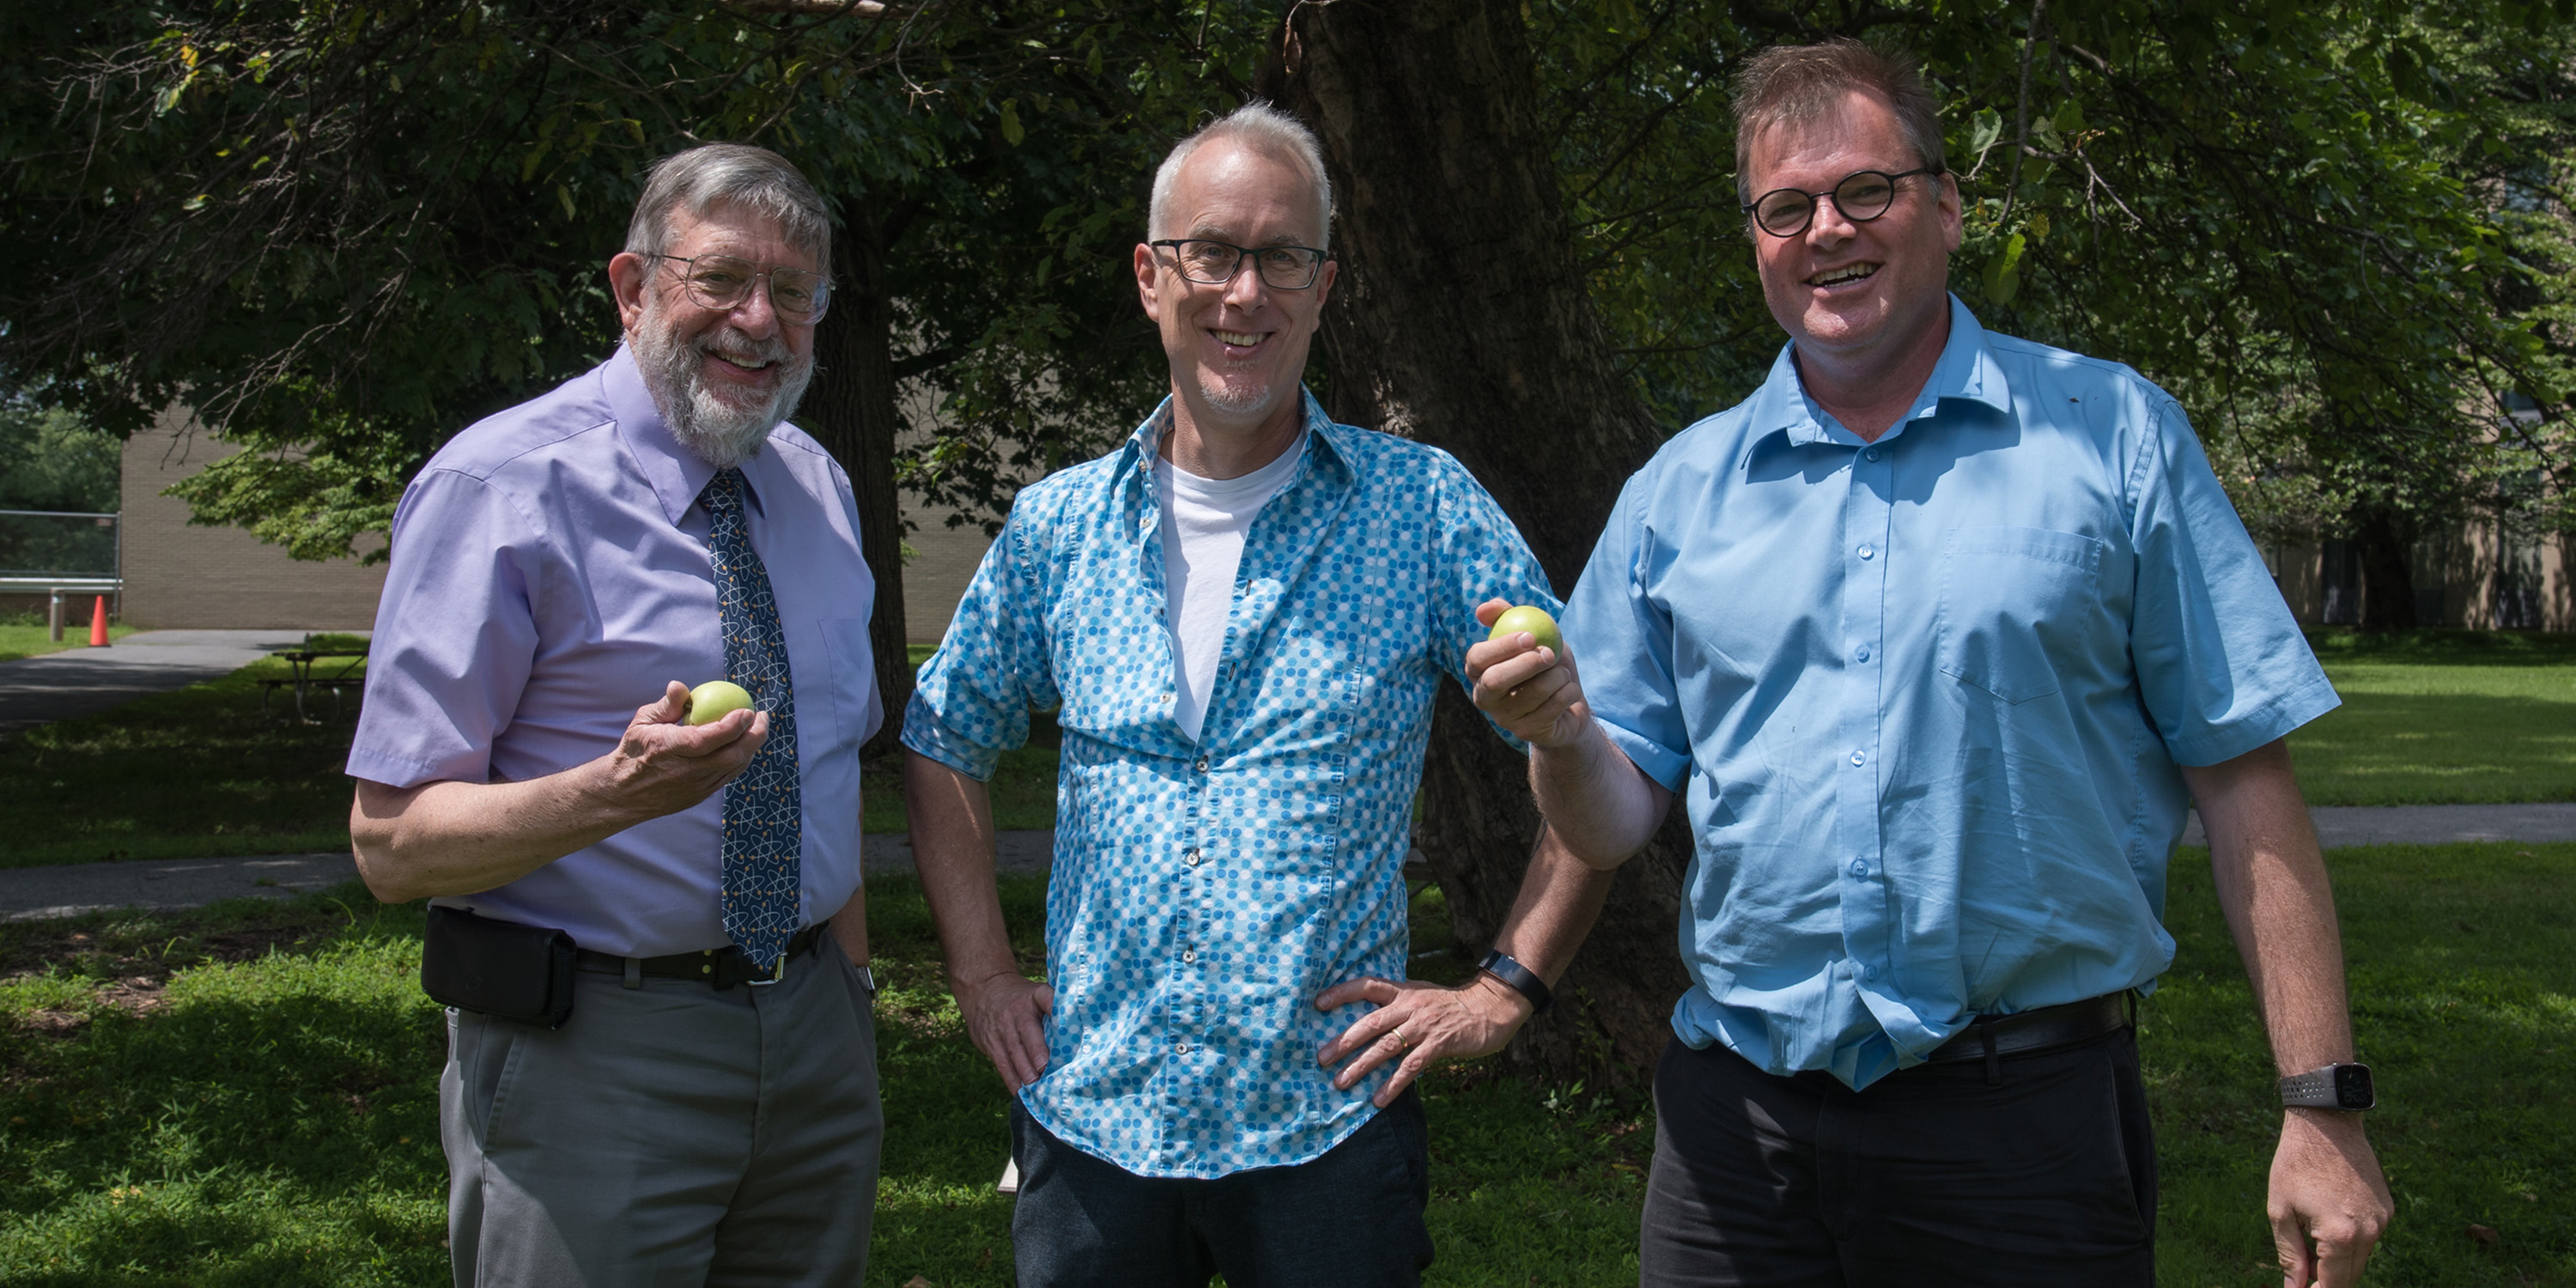 Bill Phillips, Jon Pratt and Stephan Schlamminger smile before the Newton apple tree on the NIST Gaithersburg campus. Bill and Stephan are holding small apples from the tree.